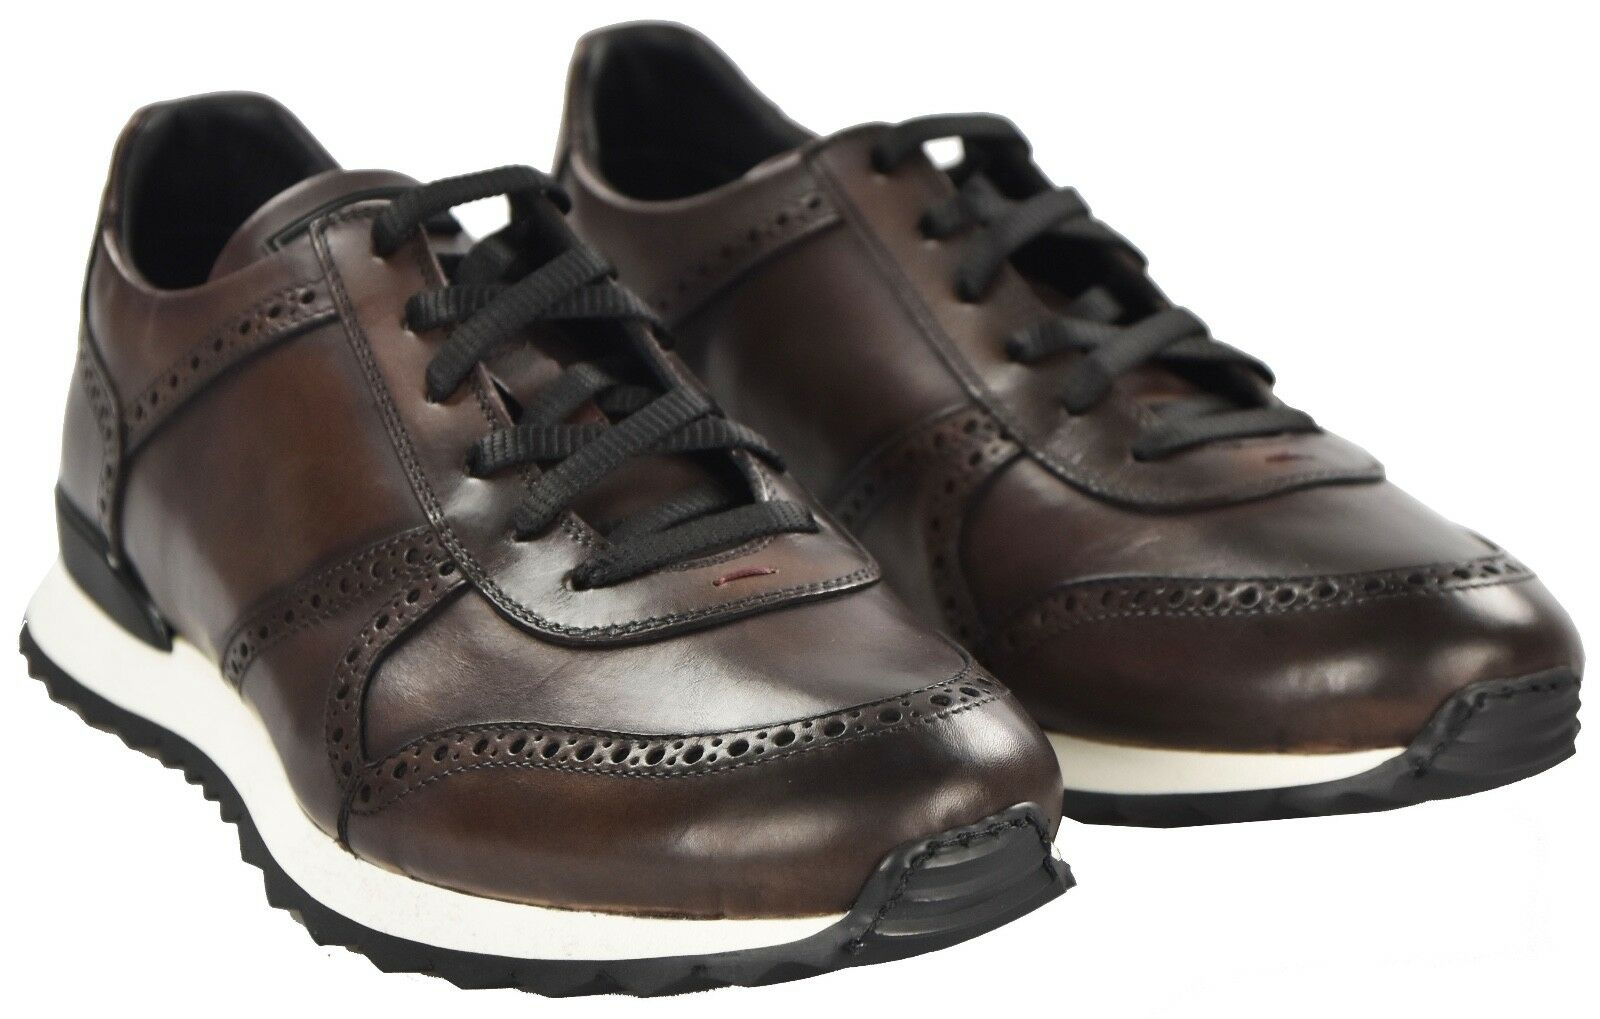 NEW KITON SHOES SNEAKERS 100% LEATHER SIZE 9 US 42 EU 18KSCW5